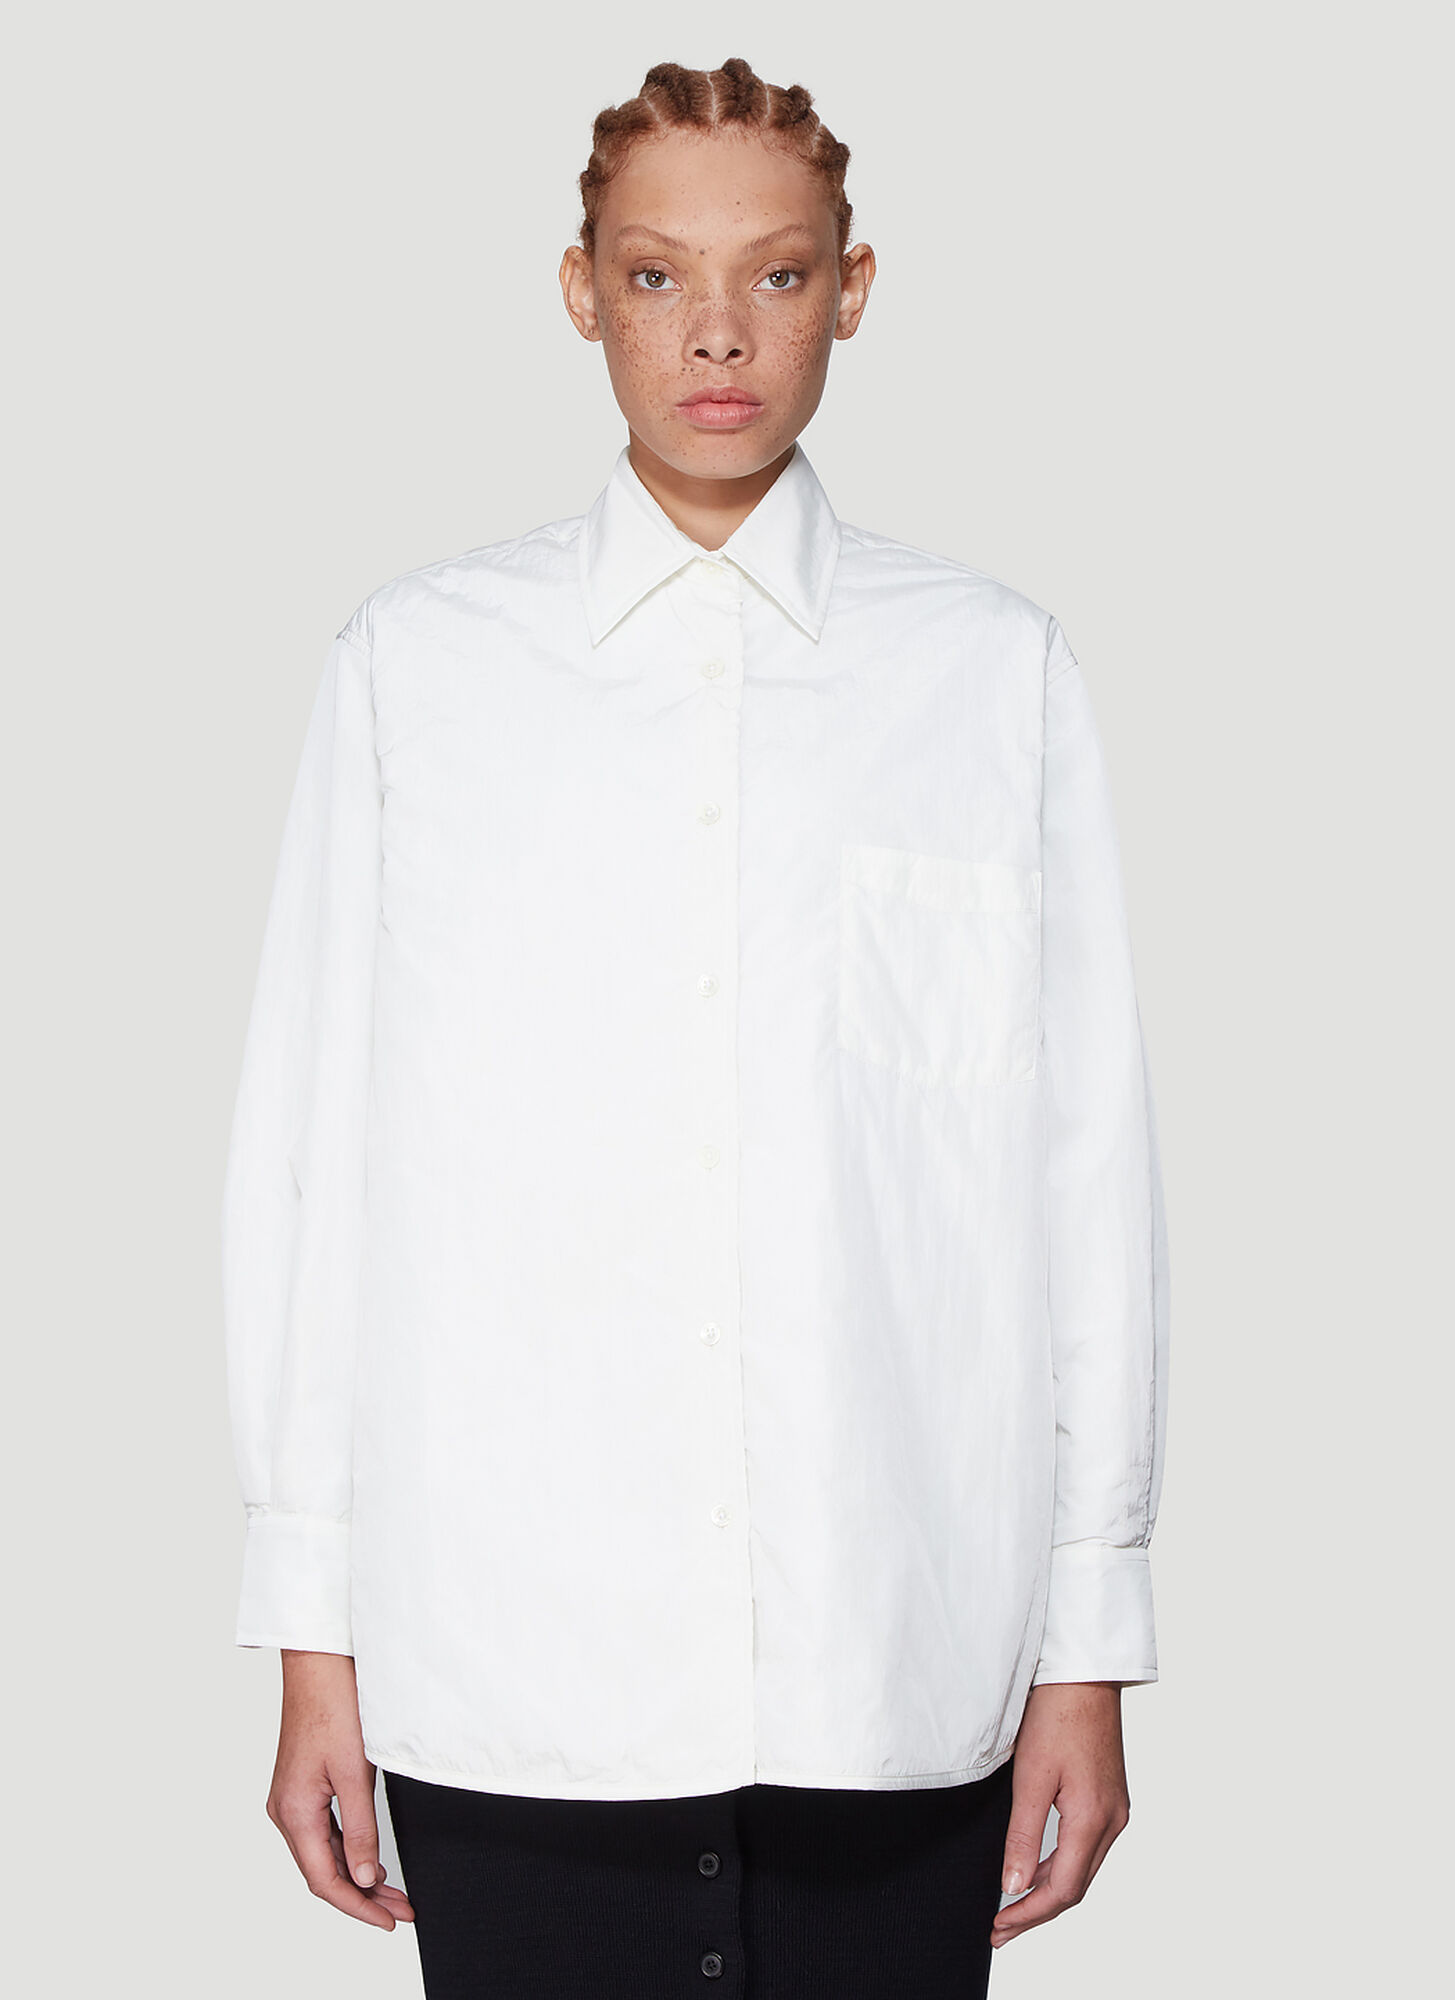 Our Legacy Technical Shirt Jacket in White